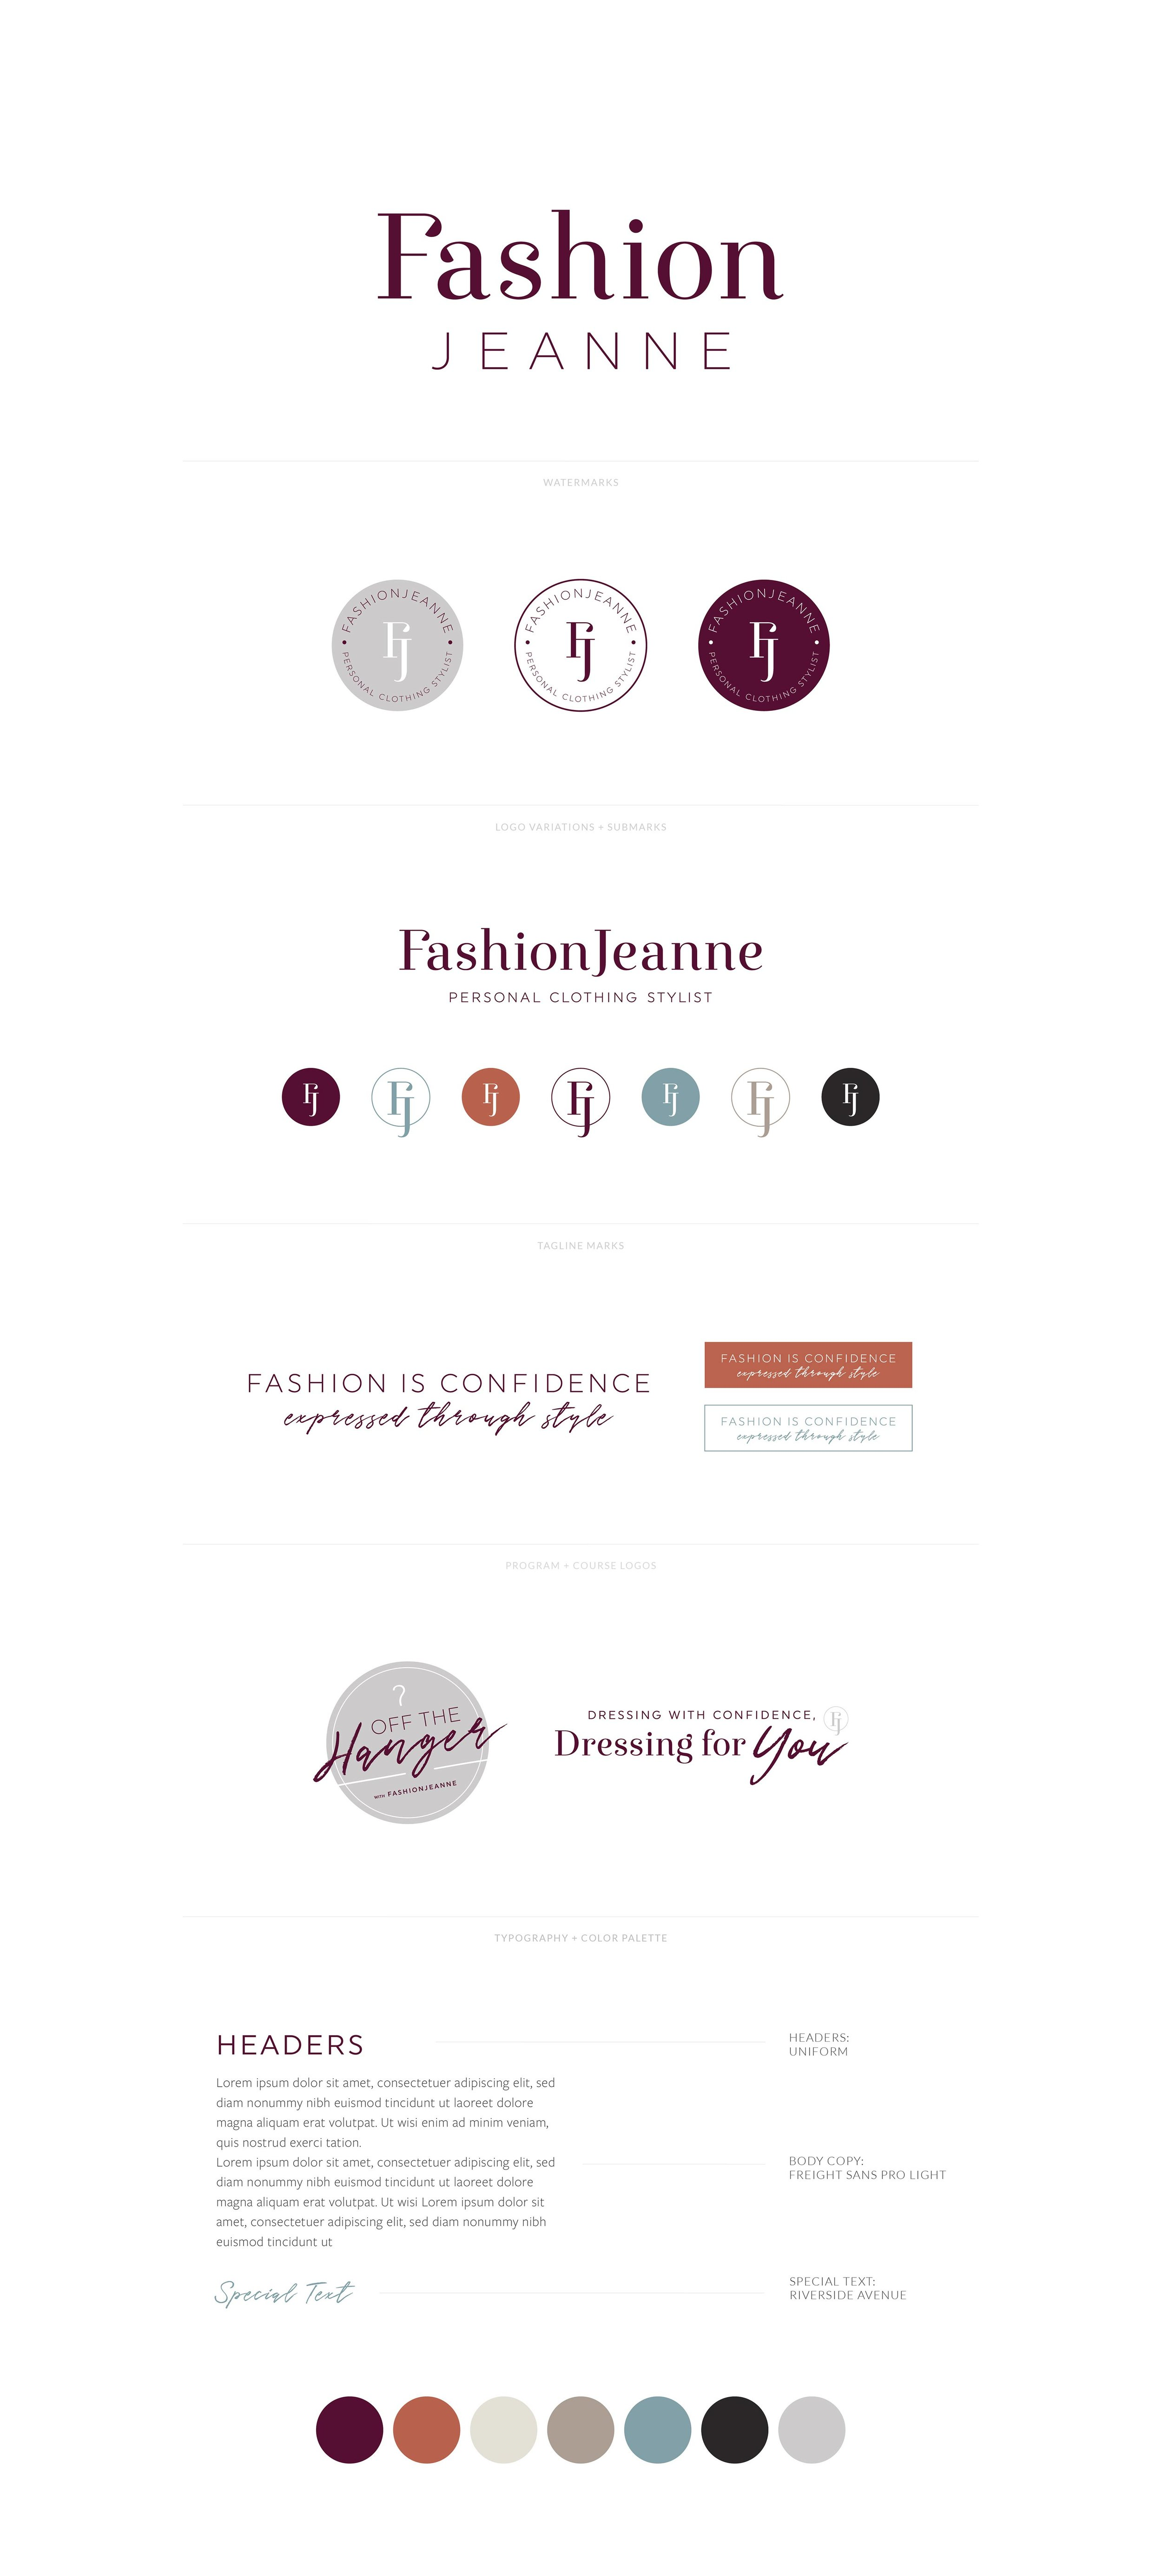 FashionJeanne, Personal Clothing Stylist   Confident, Modern, Timeless Logo, Watermark, Favicon, Tagline, YouTube Channel Logo, Course Logo, Font Styling, Color Palette   Branding by AllieMarie Design